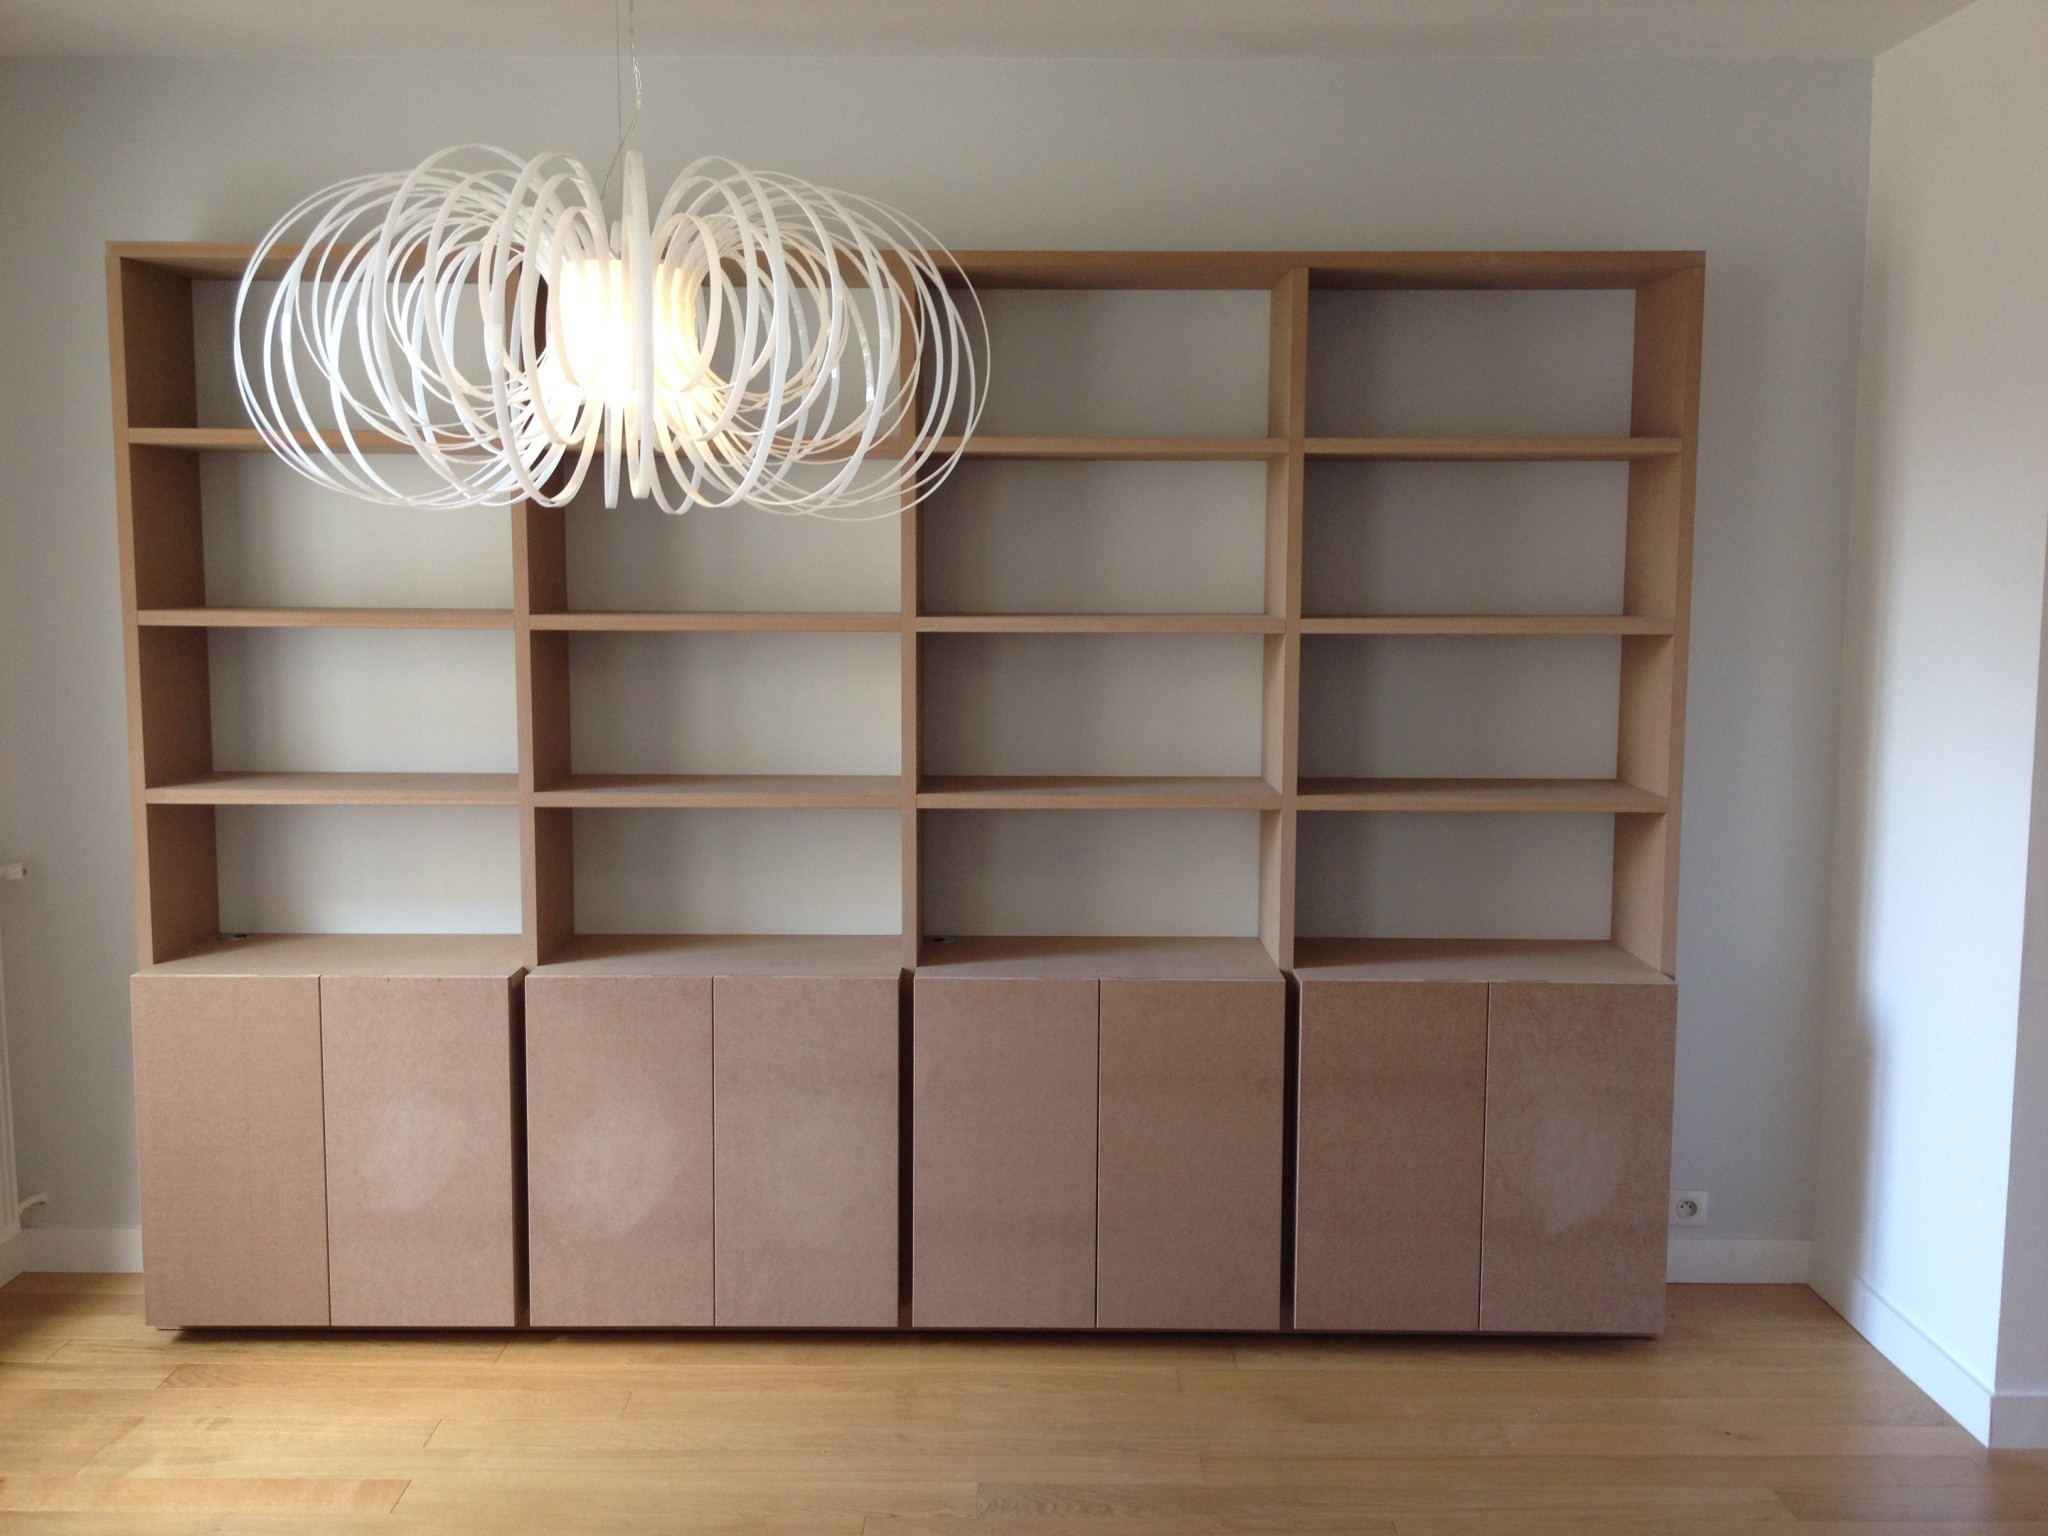 Finitions Meuble Mdf Page 2 Construire Une Bibliotheque En Mdf  # Construire Une Bibliotheque